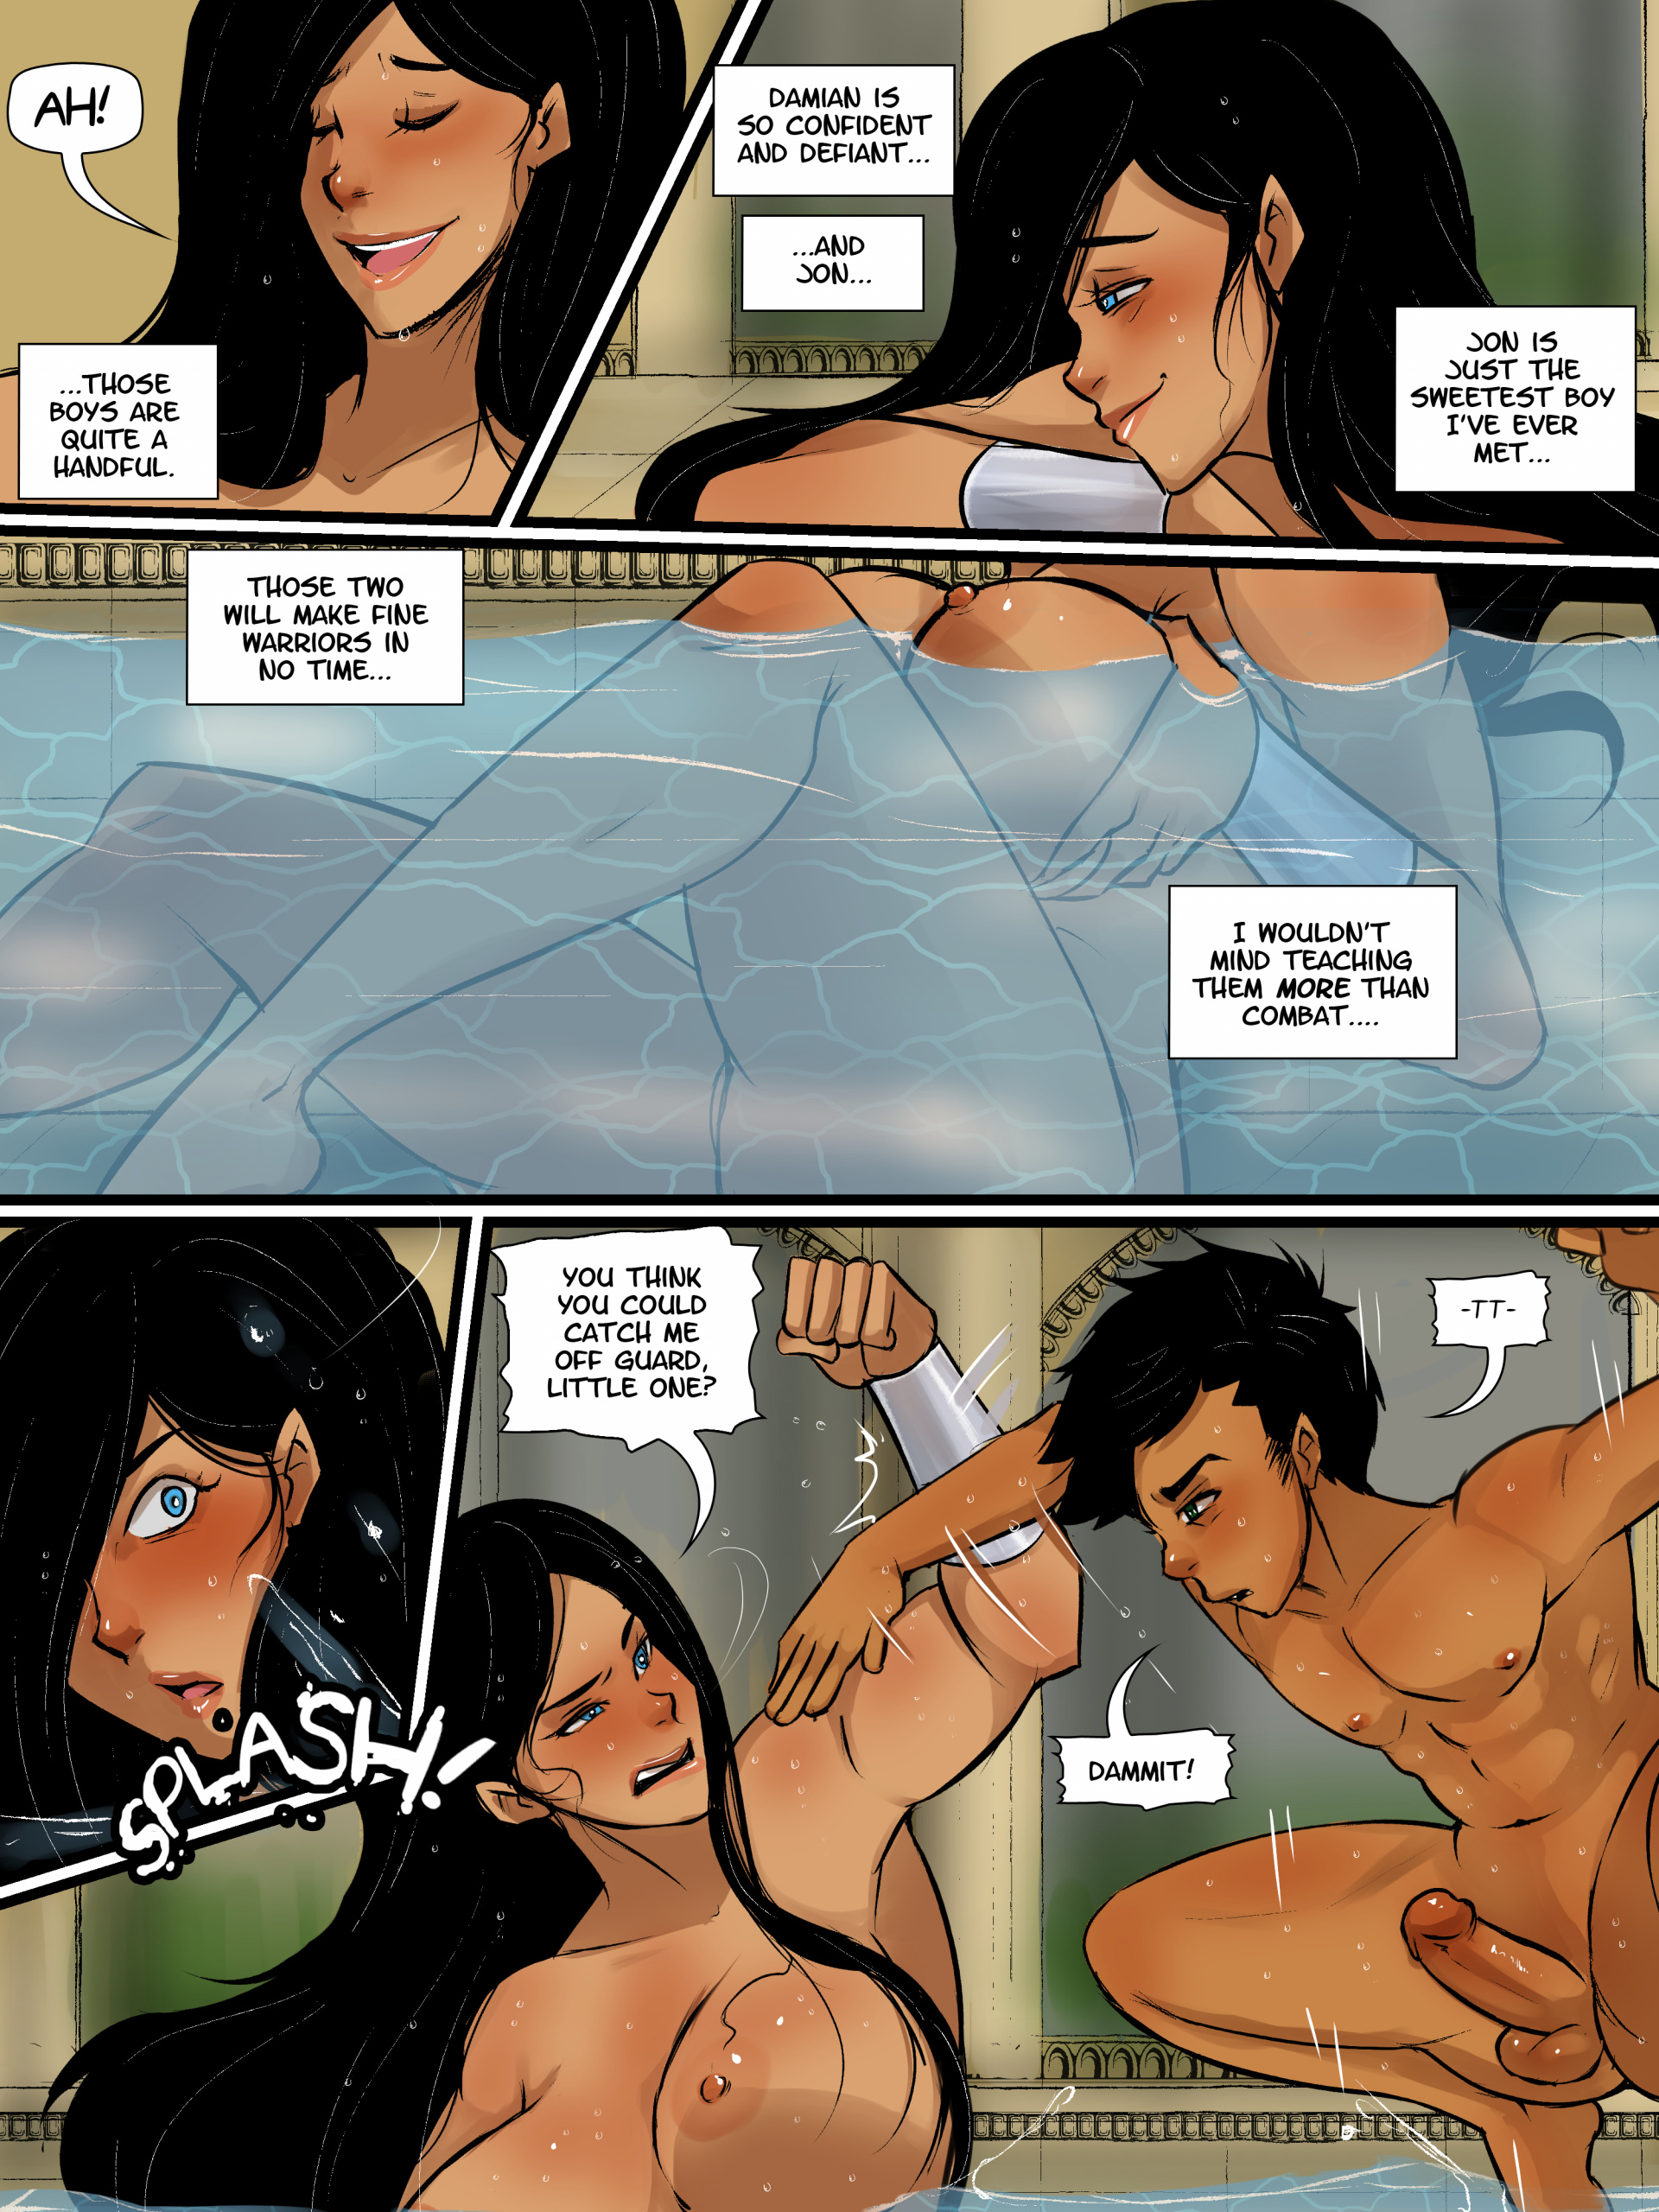 Super Sons 2 porn comics Oral sex, Anal Sex, BDSM, Big Tits, Blowjob, Bondage, Creampie, Deepthroat, Domination, Double Penetration, Group Sex, Straight, Straight Shota, Submission, Threesome, X-Ray